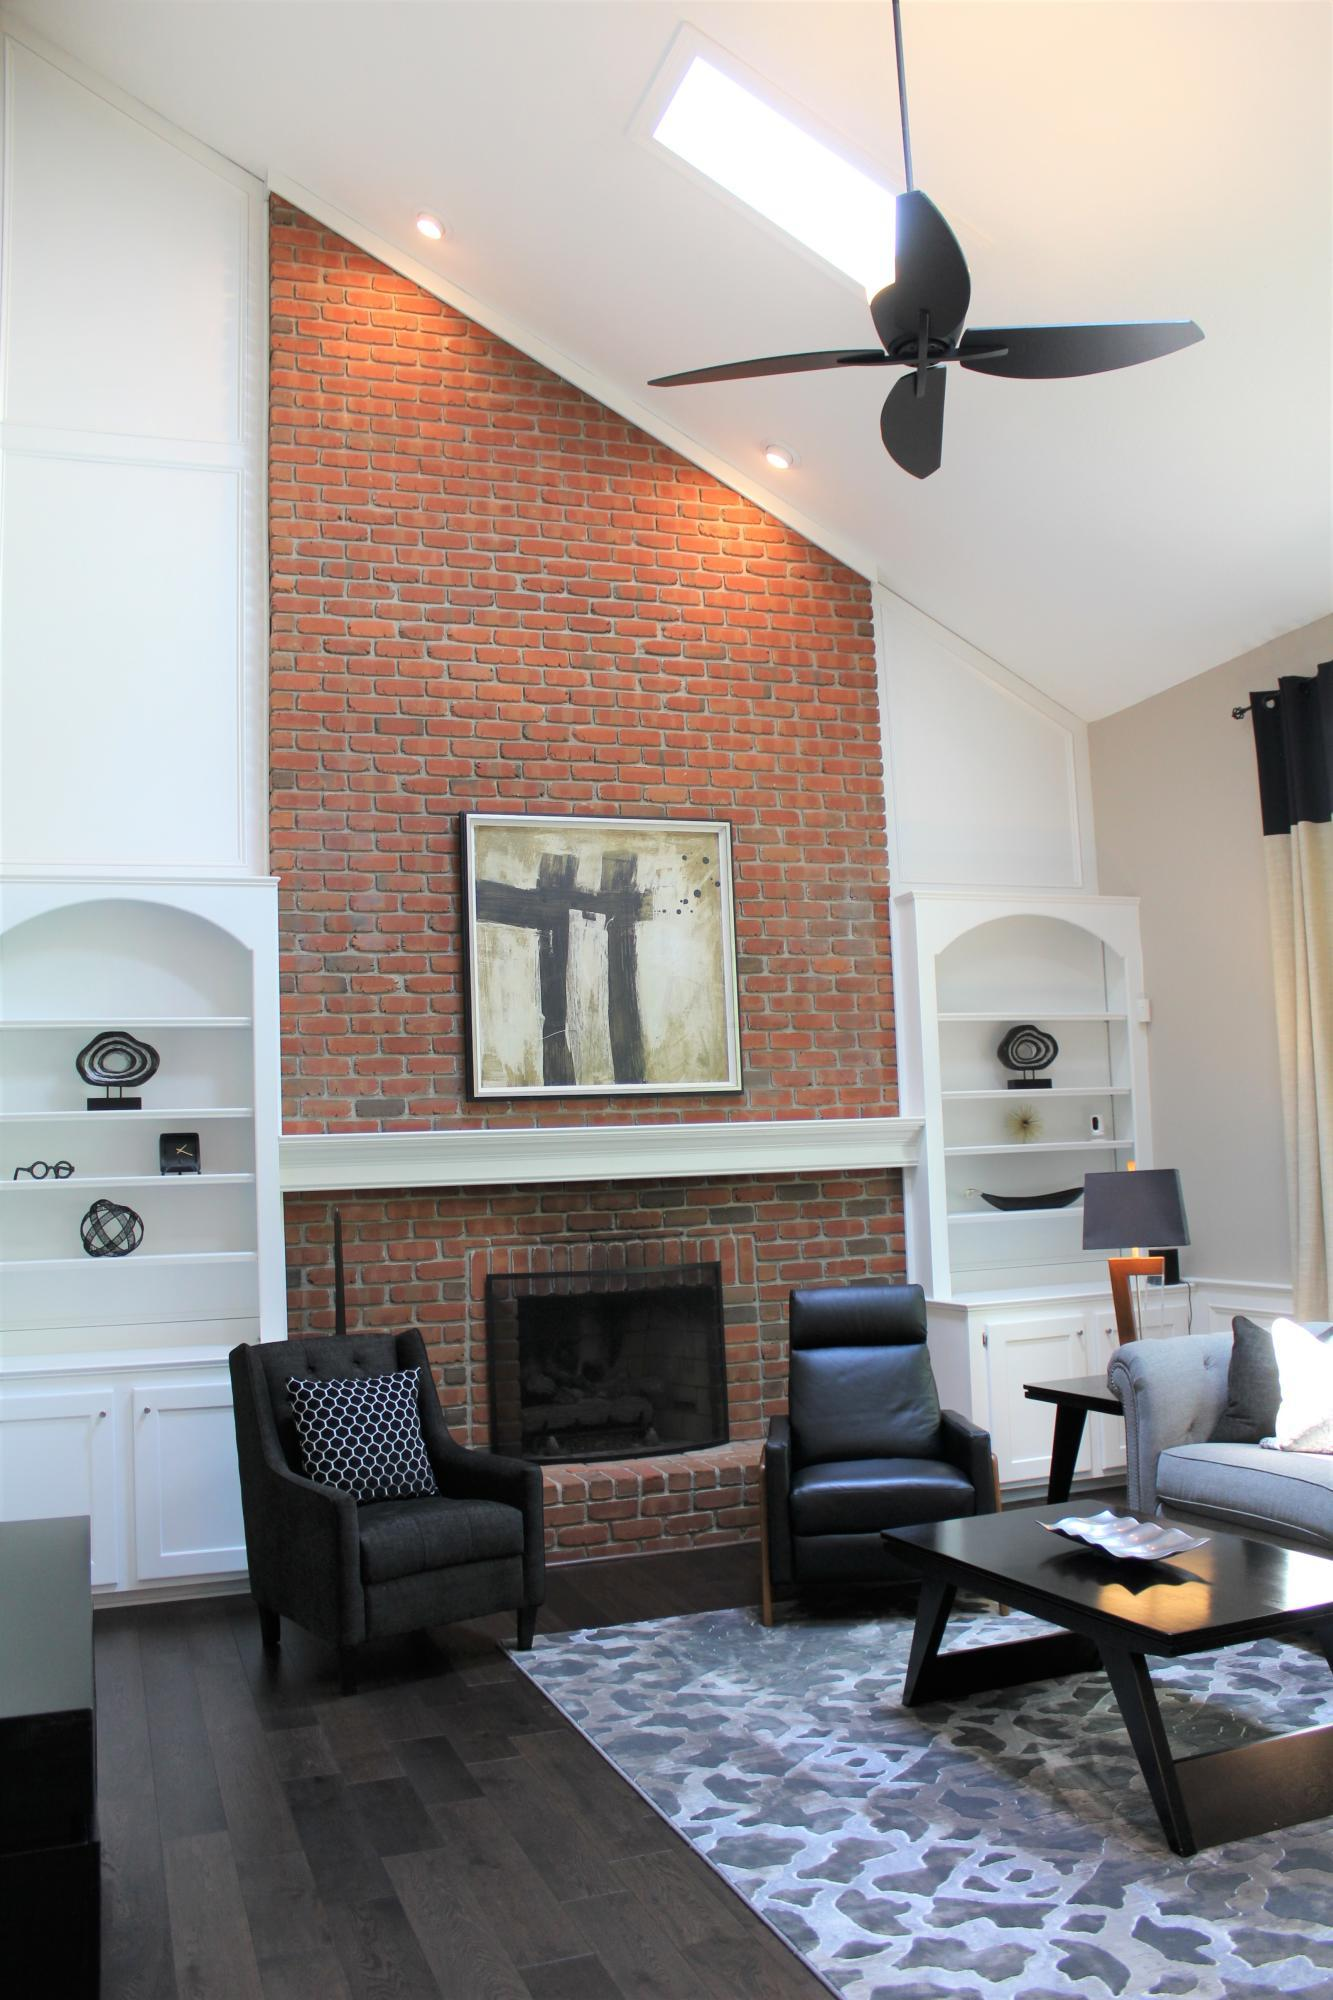 Vaulted ceiling & gas fireplace